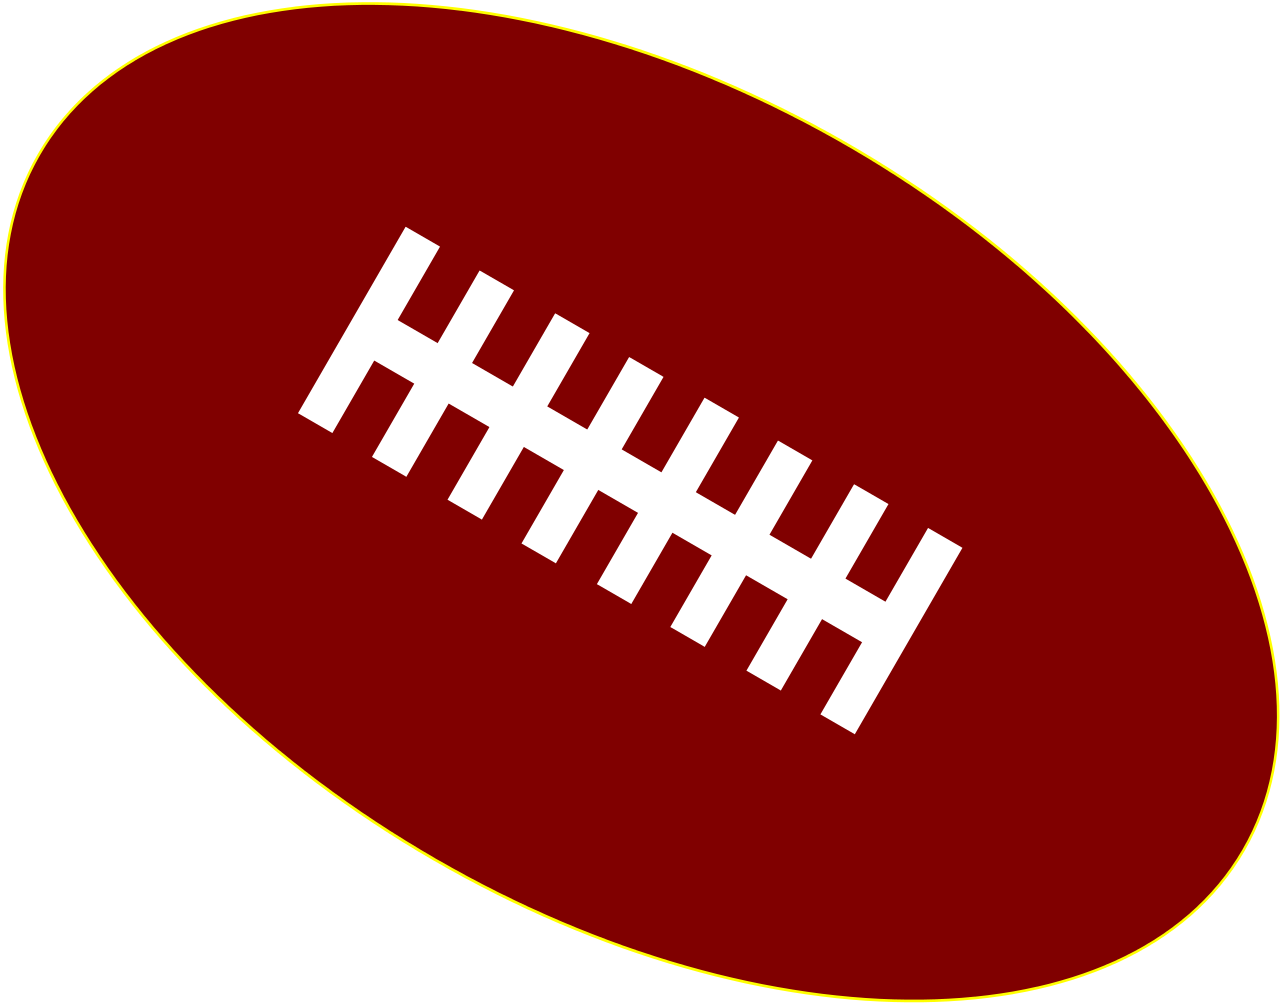 American Football PNG Image